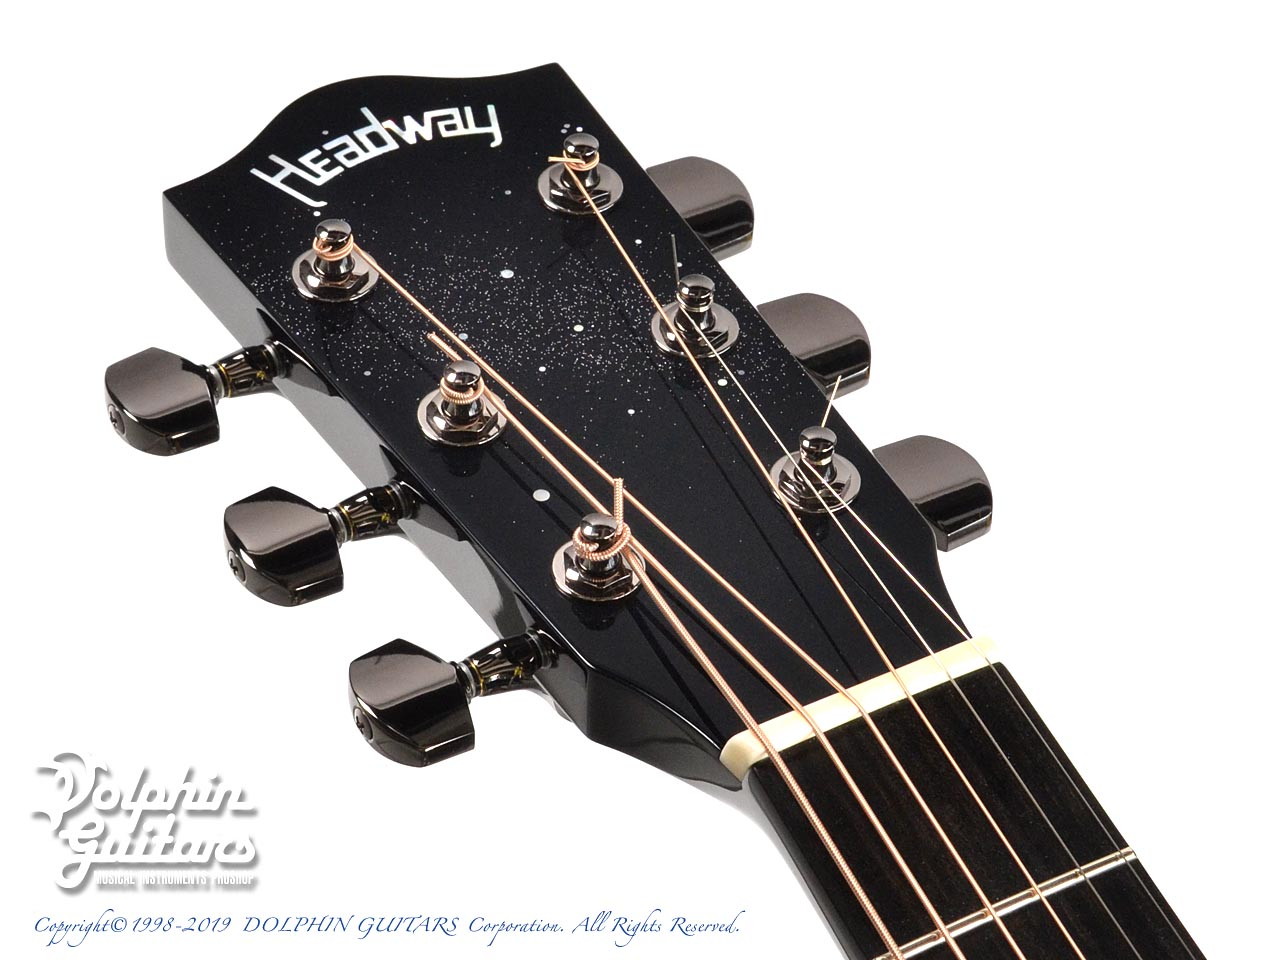 HEADWAY: HF-JET BLACK DX with Custom Ogawa Inlay (6)